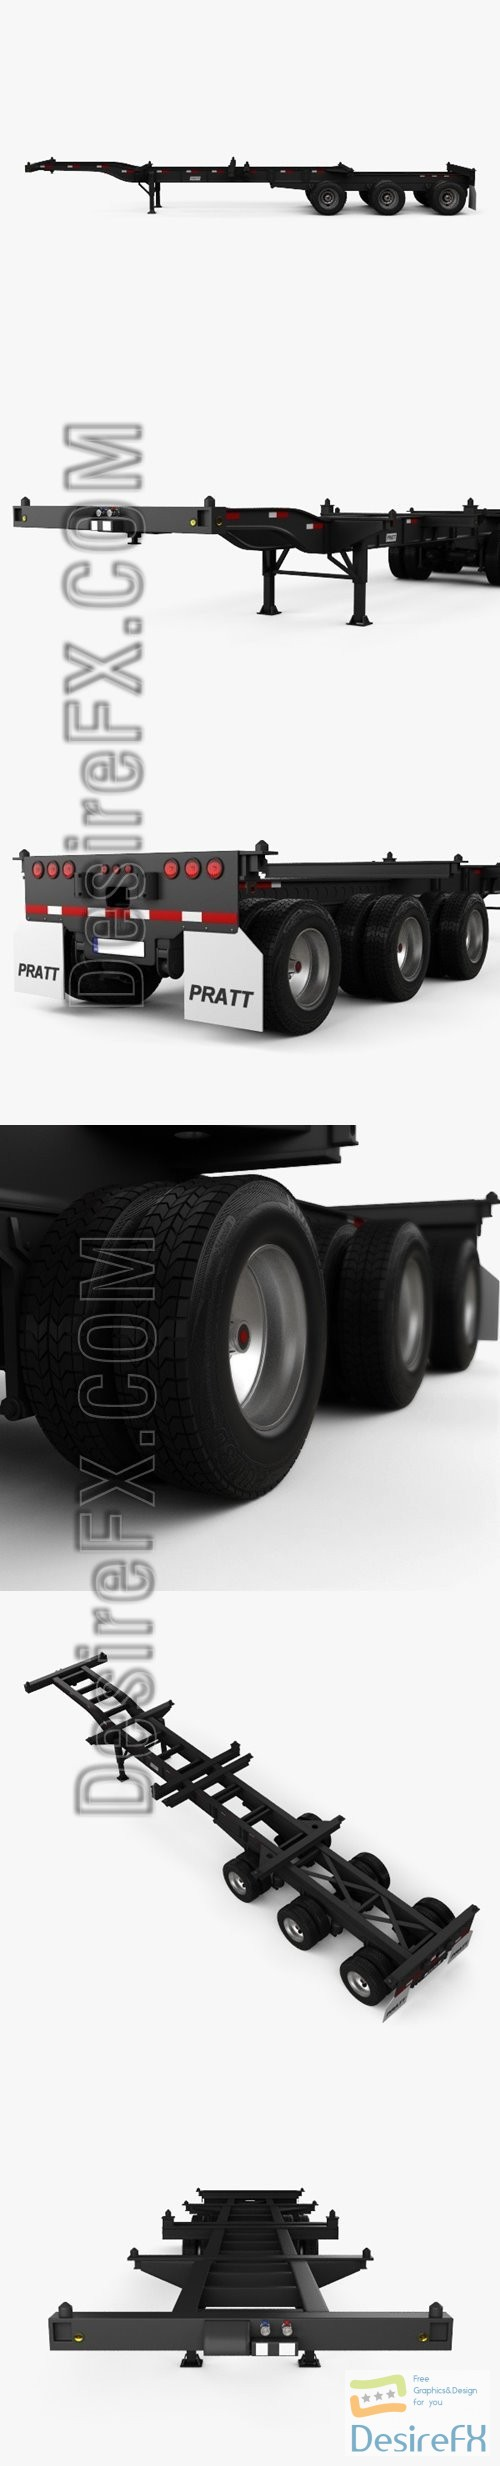 3d-models - Pratt Container Chassis 40ft Semi Trailer 2018 3D Model